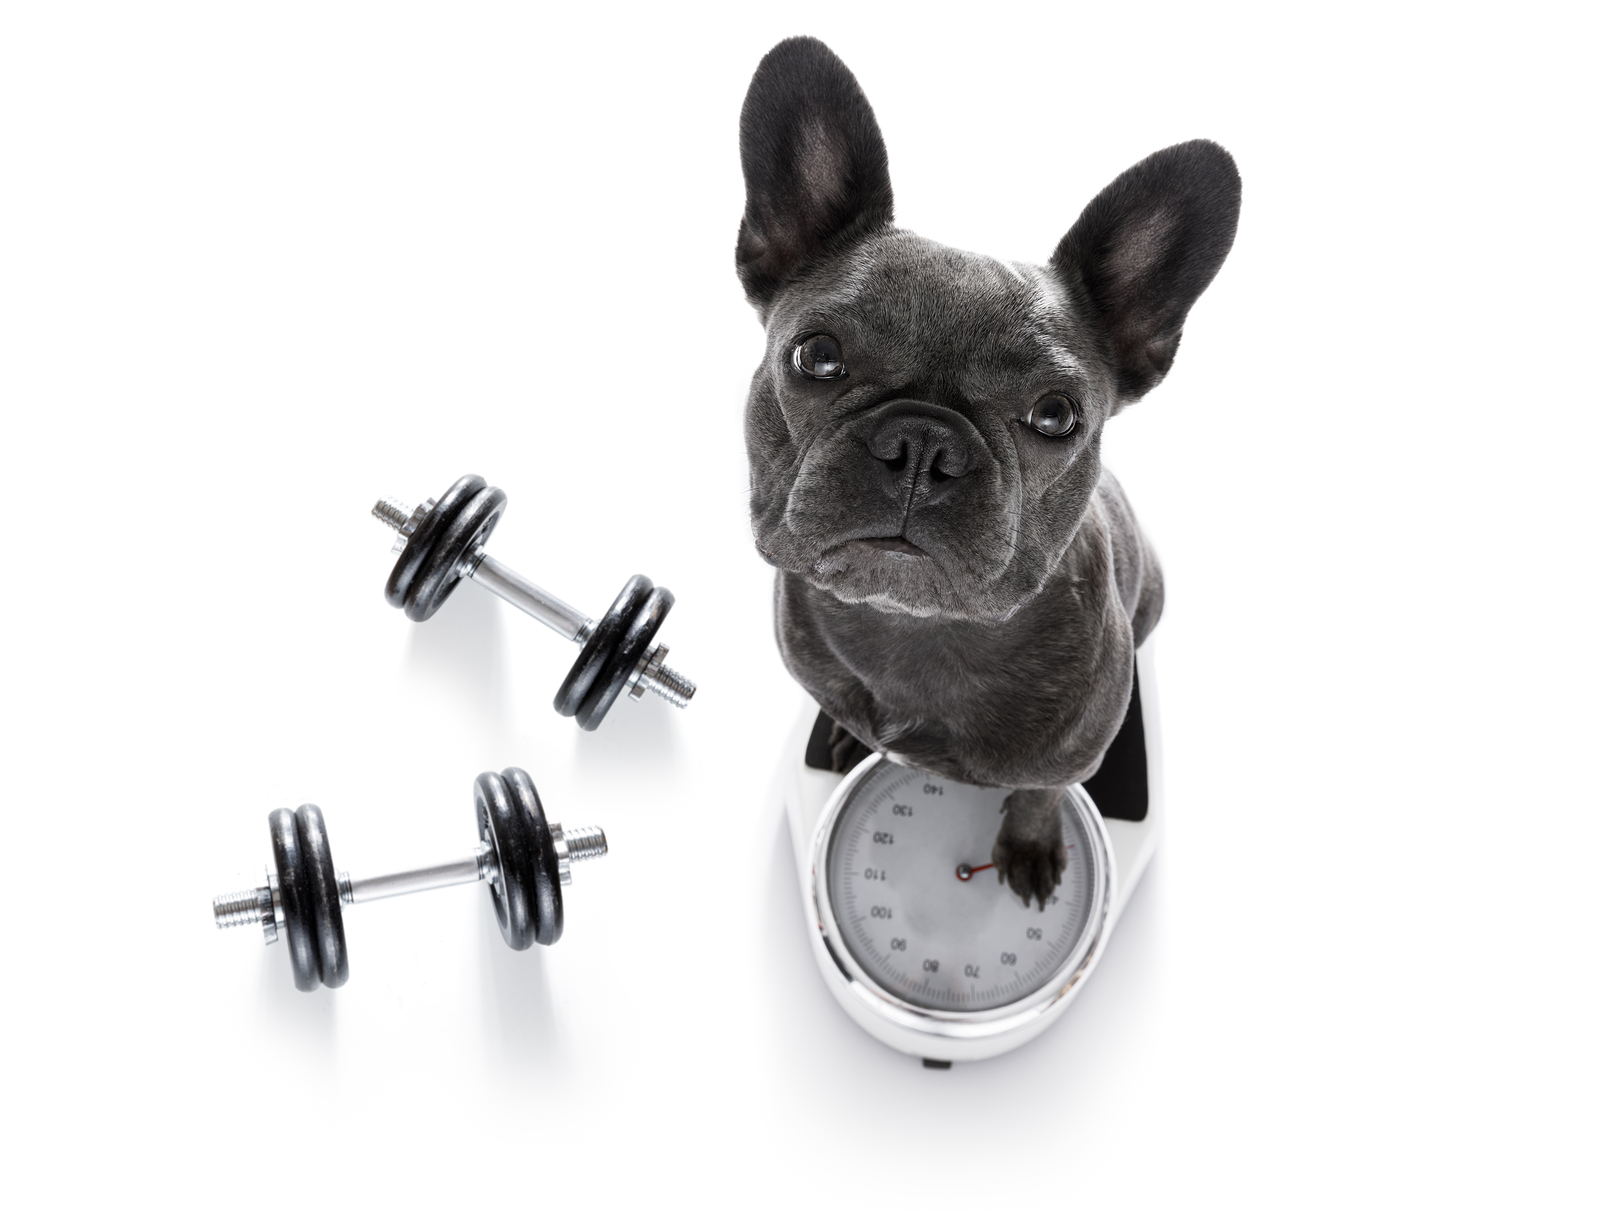 french bulldog dog with guilty conscience for overweight and to loose weight standing on a scale isolated on white background with dumbbells